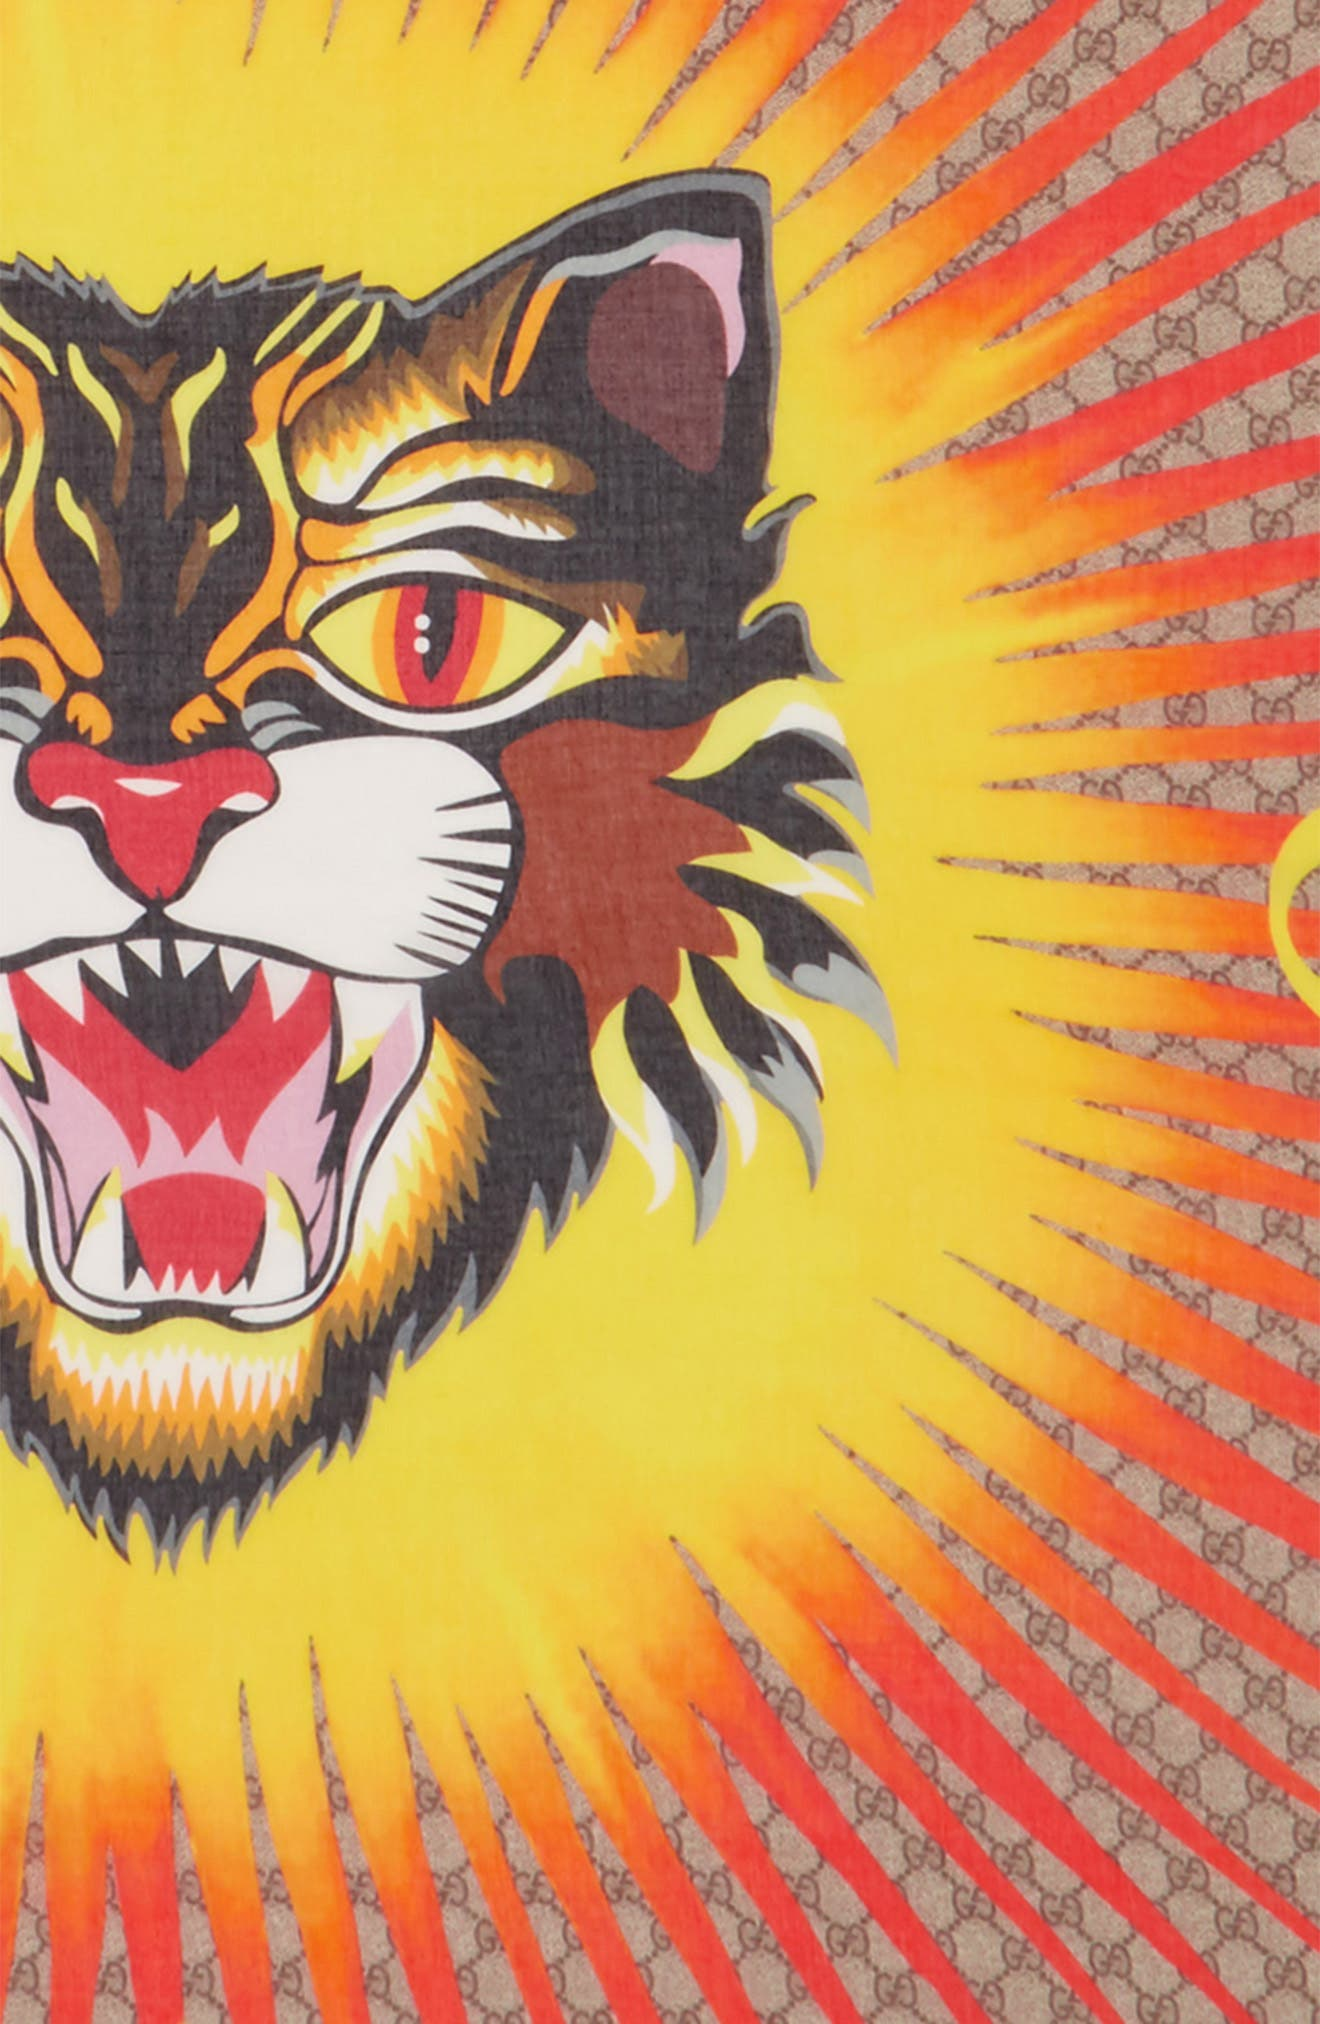 Sun Angry Cat Print Modal & Silk Scarf,                             Alternate thumbnail 3, color,                             250